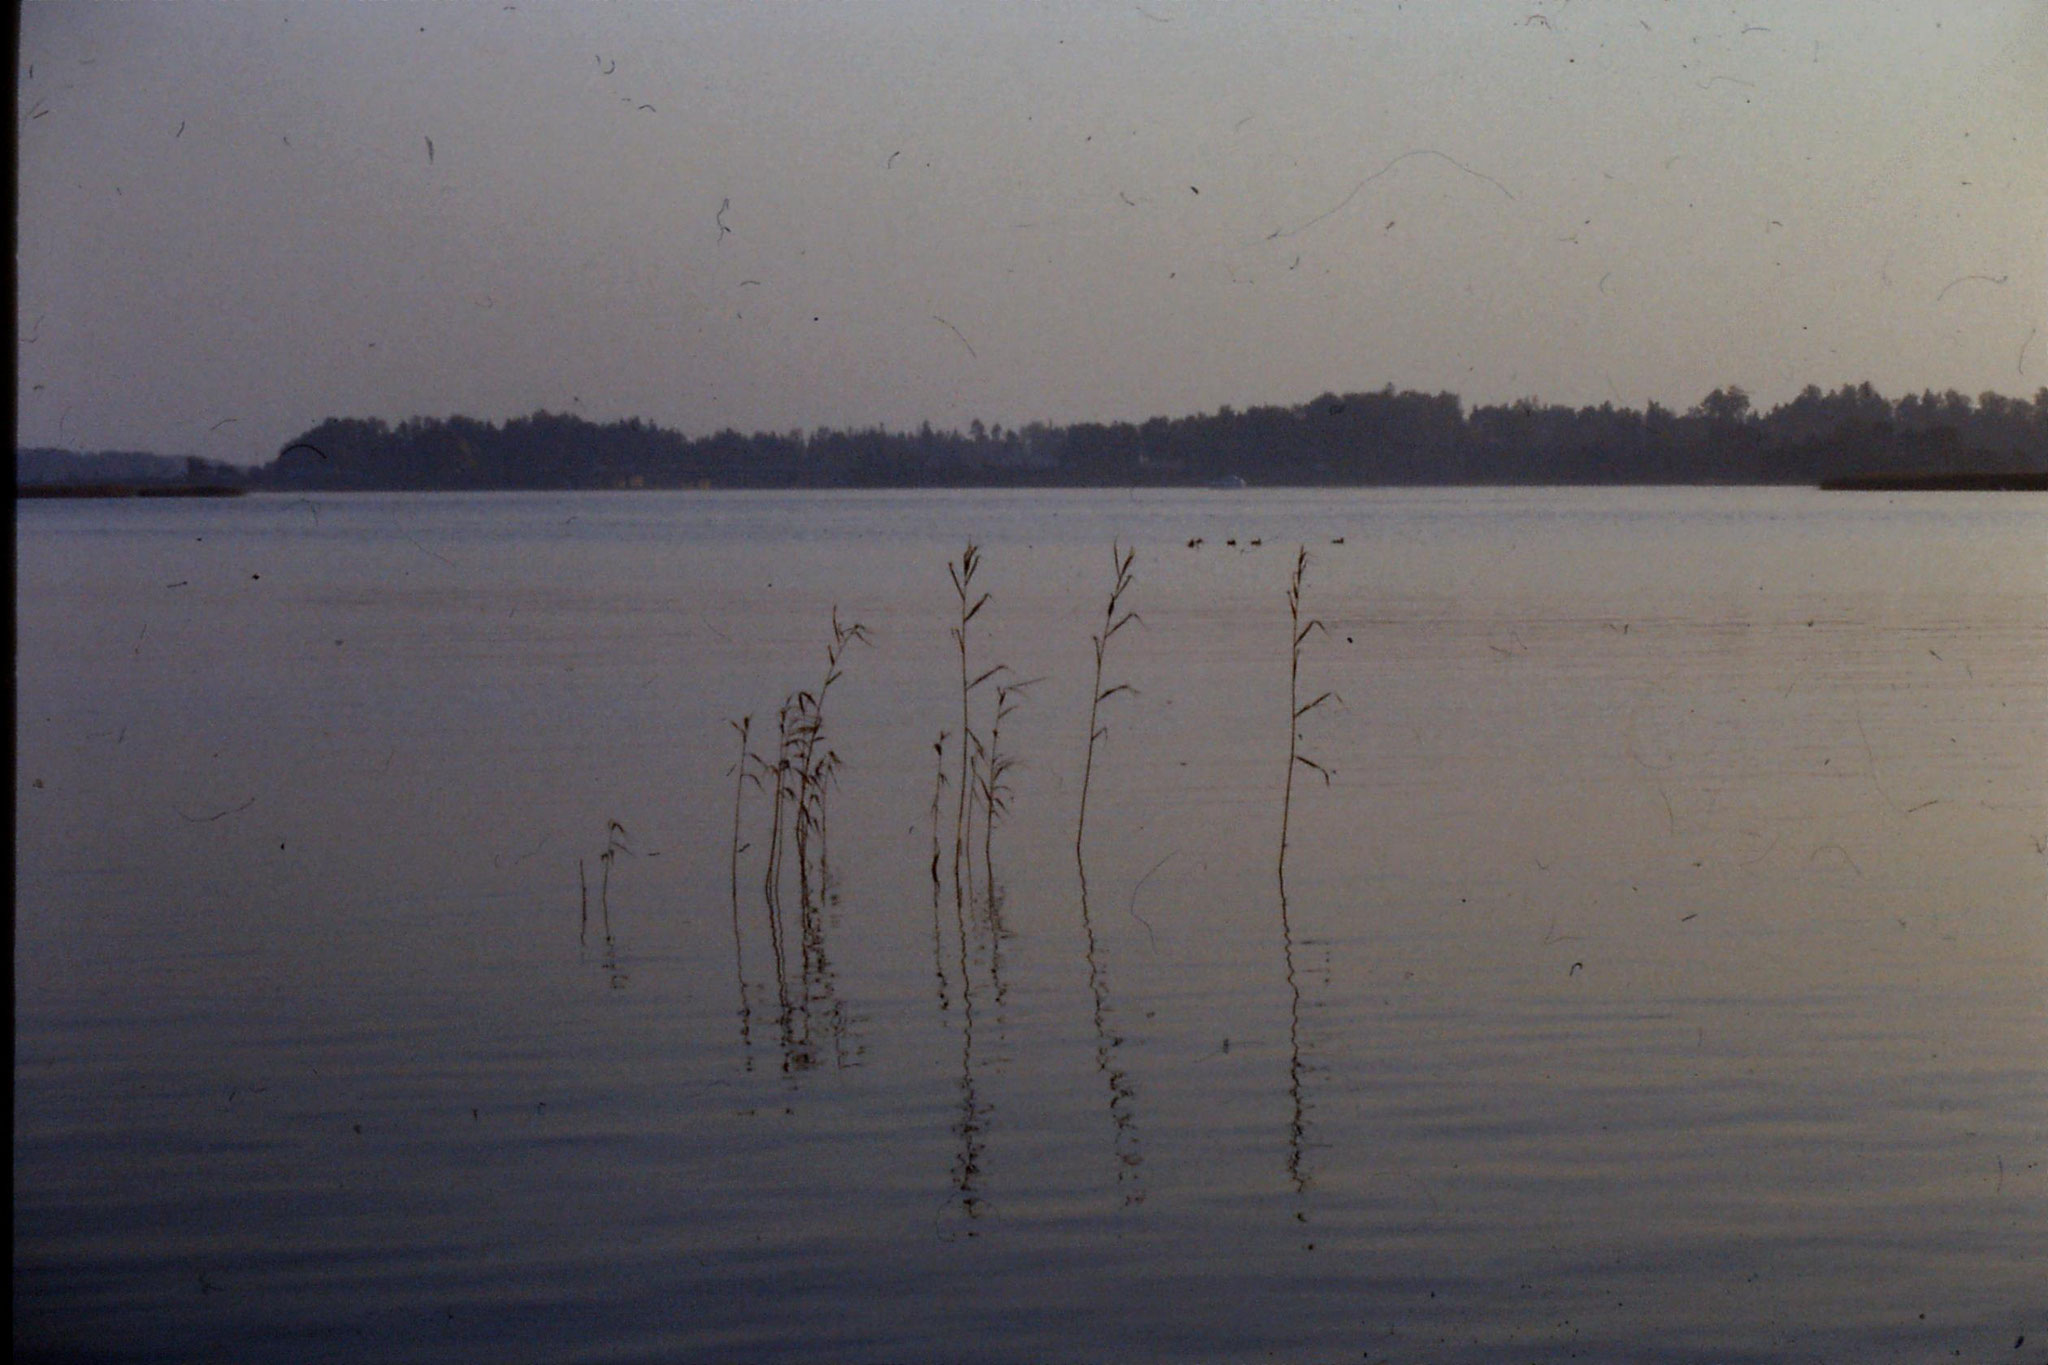 5/10/1988: 2: looking south from Otaniemi